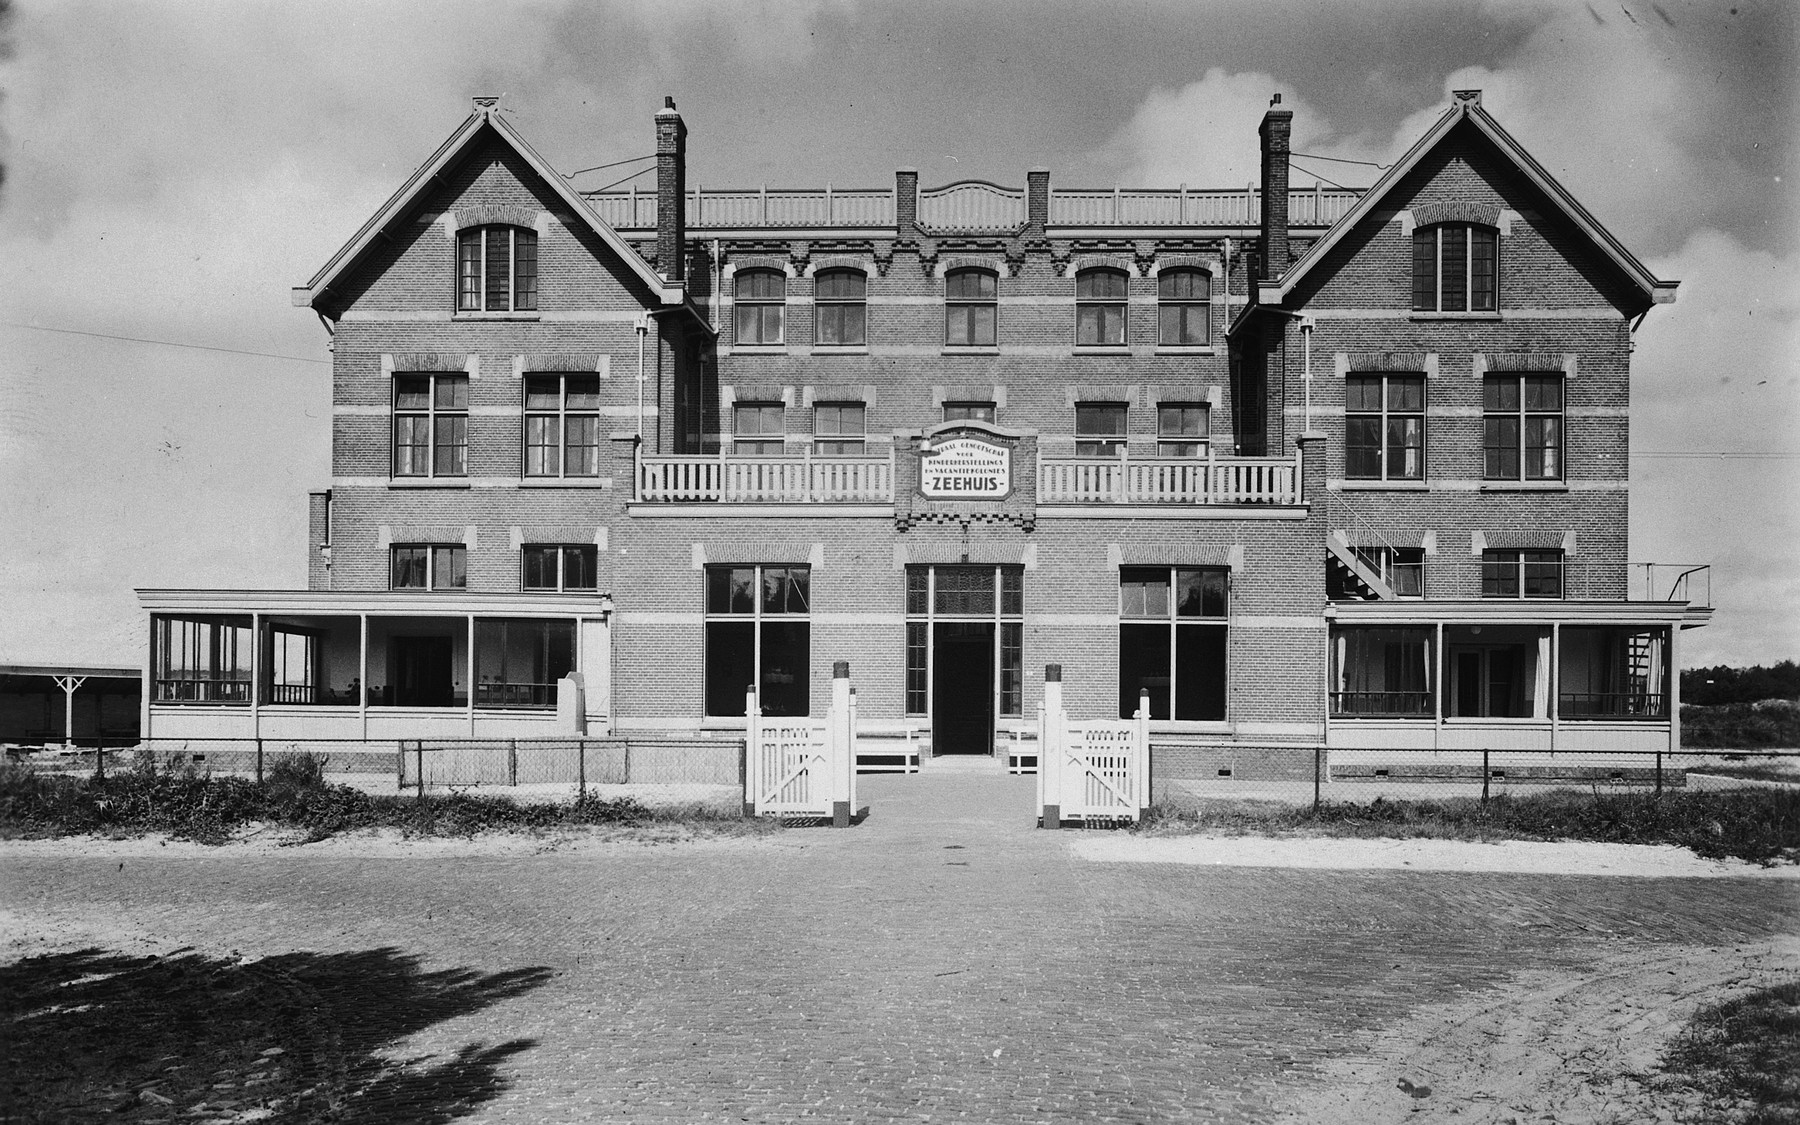 """View of the children's home referred to as the """"Zeehuis"""" (Sea house) in Bergen aan Zee."""